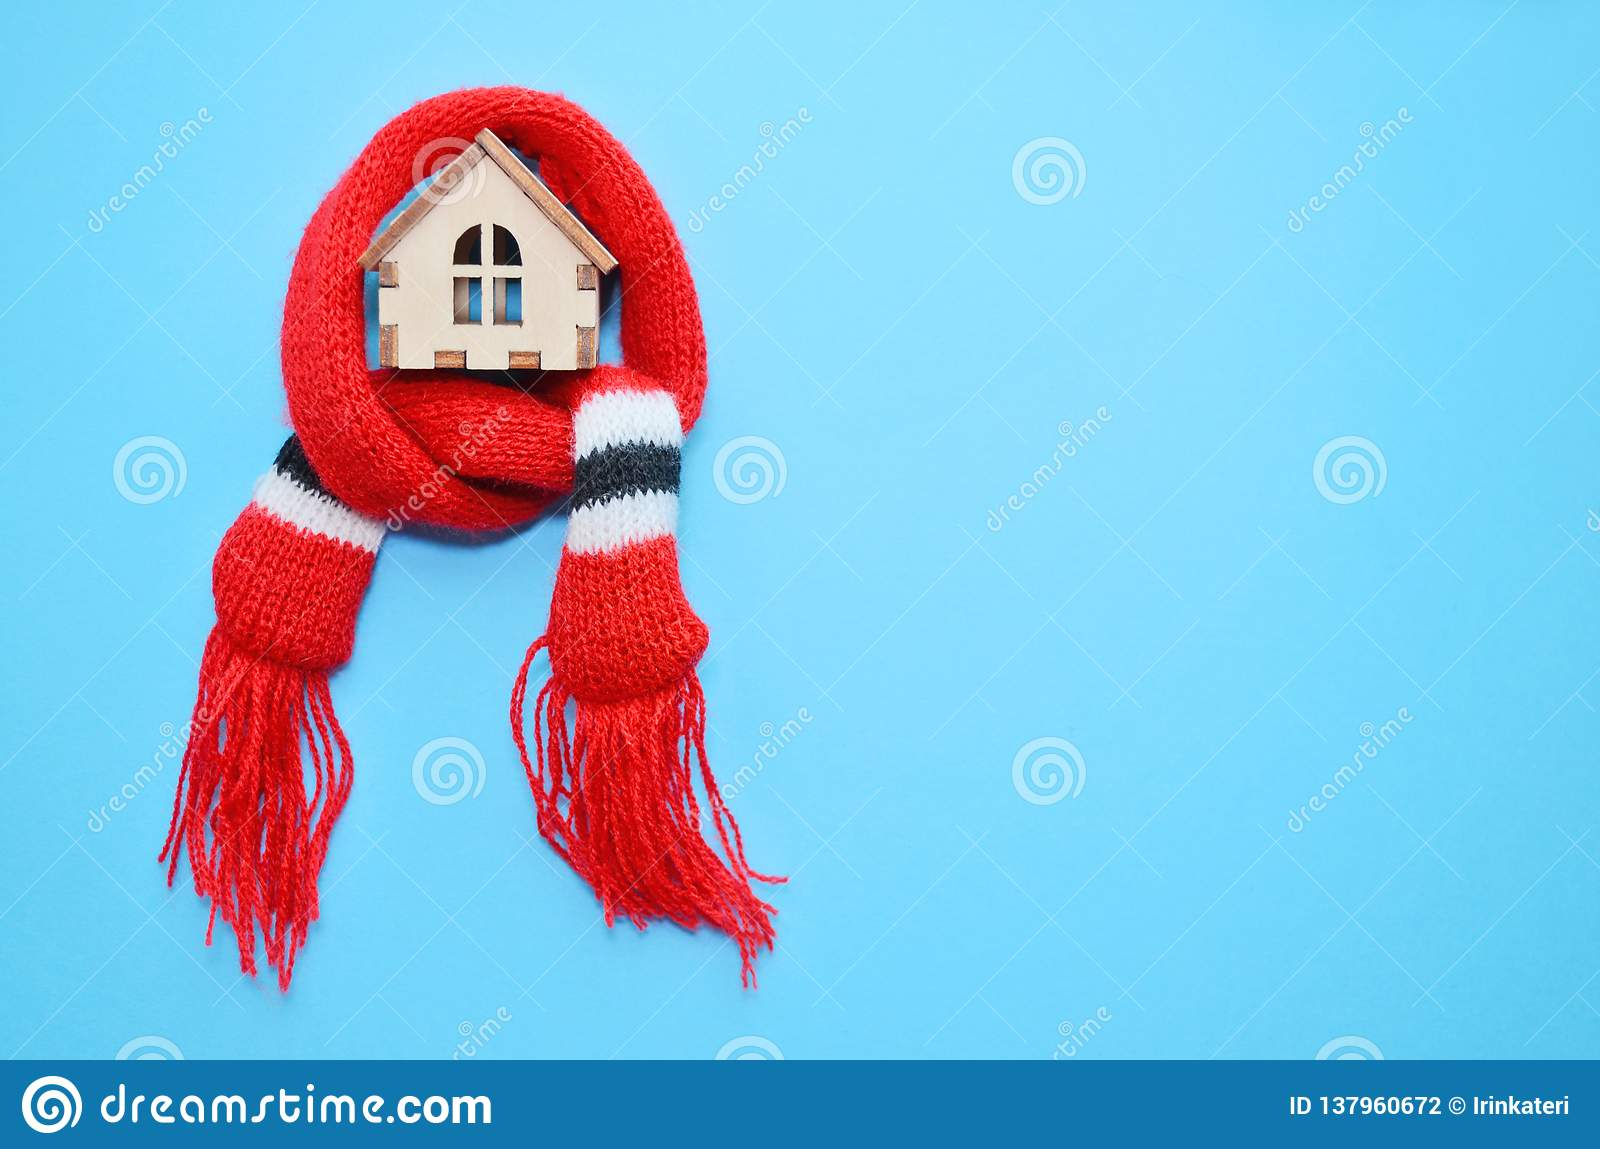 Wooden toy house with windows in a red scarf on a blue background, warm house, insulation of house, copyspace